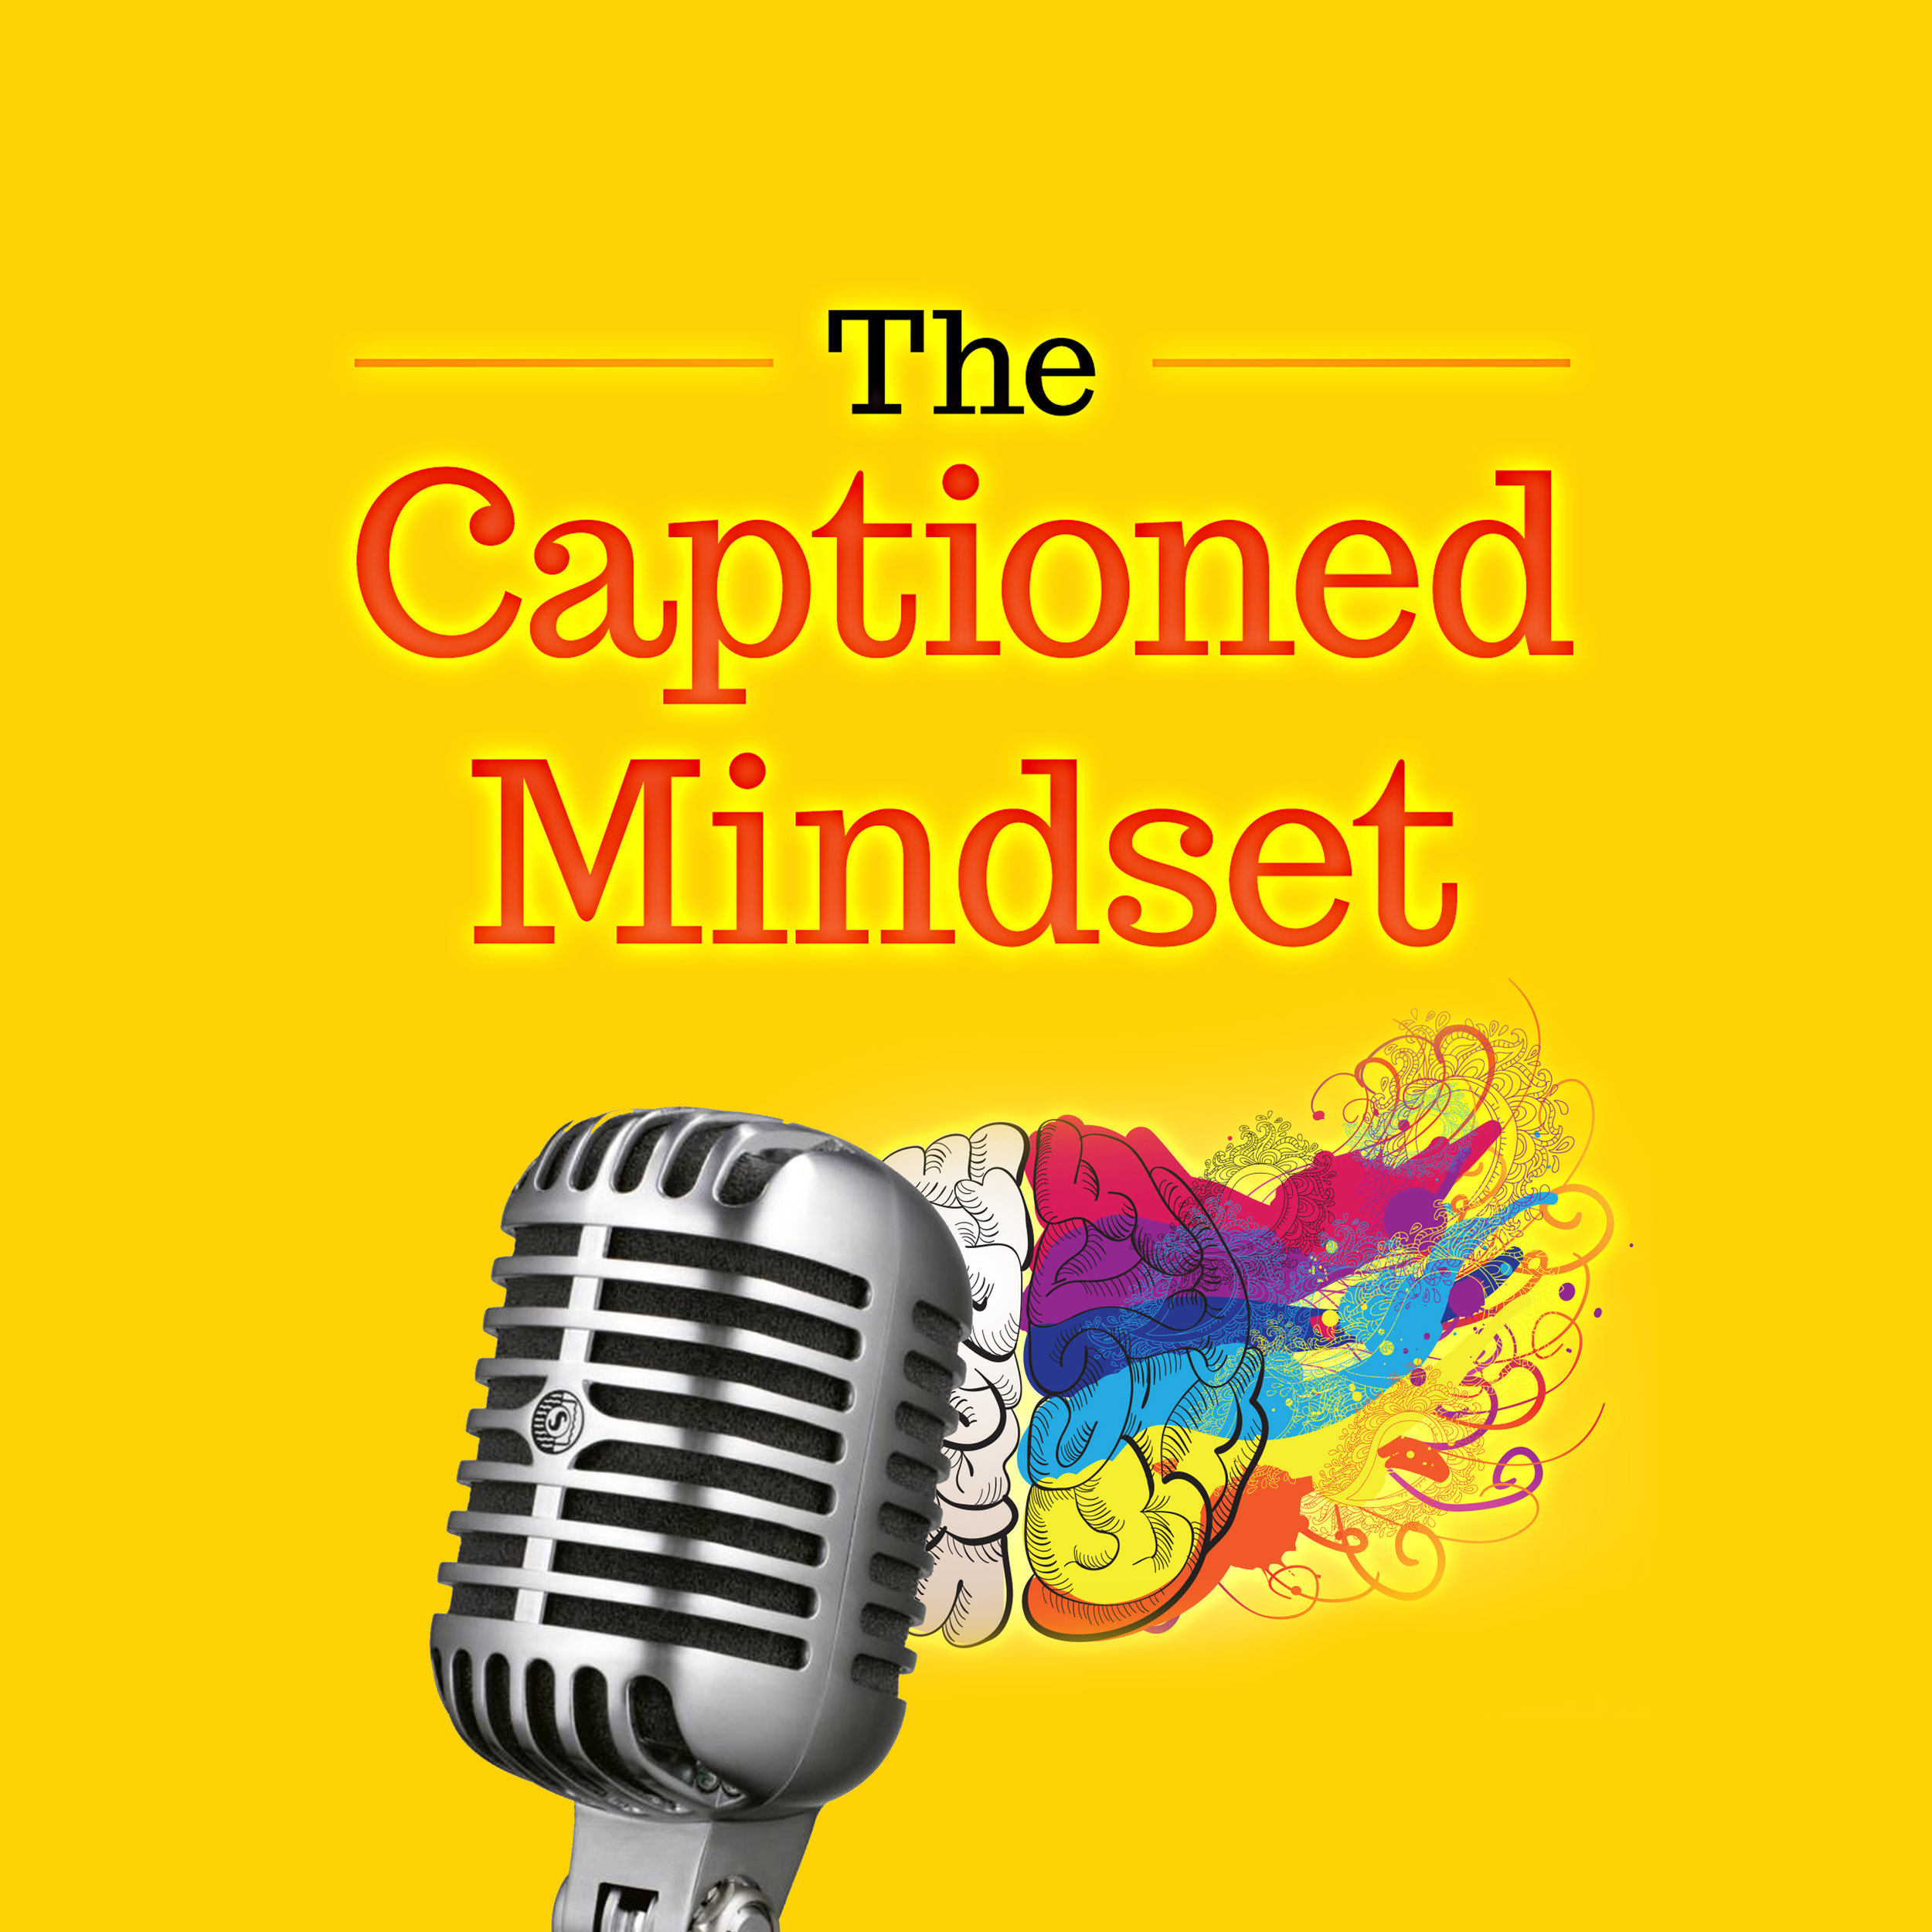 A Podcast? - Remember, The Captioned Mindset isn't just a book. Therefore, it's really important as a community to not just read but be able to hear from each other's insights, lessons learned, and just crazy experiences. Thus, The Captioned Mindset Podcast was born.But not just anyone's experience. Your most inspiring CEO's, influencers, creatives, artists, and more such as Natalie Franke (Founder of Rising Tide Society), Daiyan Trisha (Malaysian pop-star), Jamie Chung (Actress), and Adam Flores (Business coach and published author).This Podcast is designed to give you the most unique and powerful perspectives of the people I've had the honor interviewing as they each share from 1 page written in The Captioned Mindset and dive in to their own personal journey relating to it.